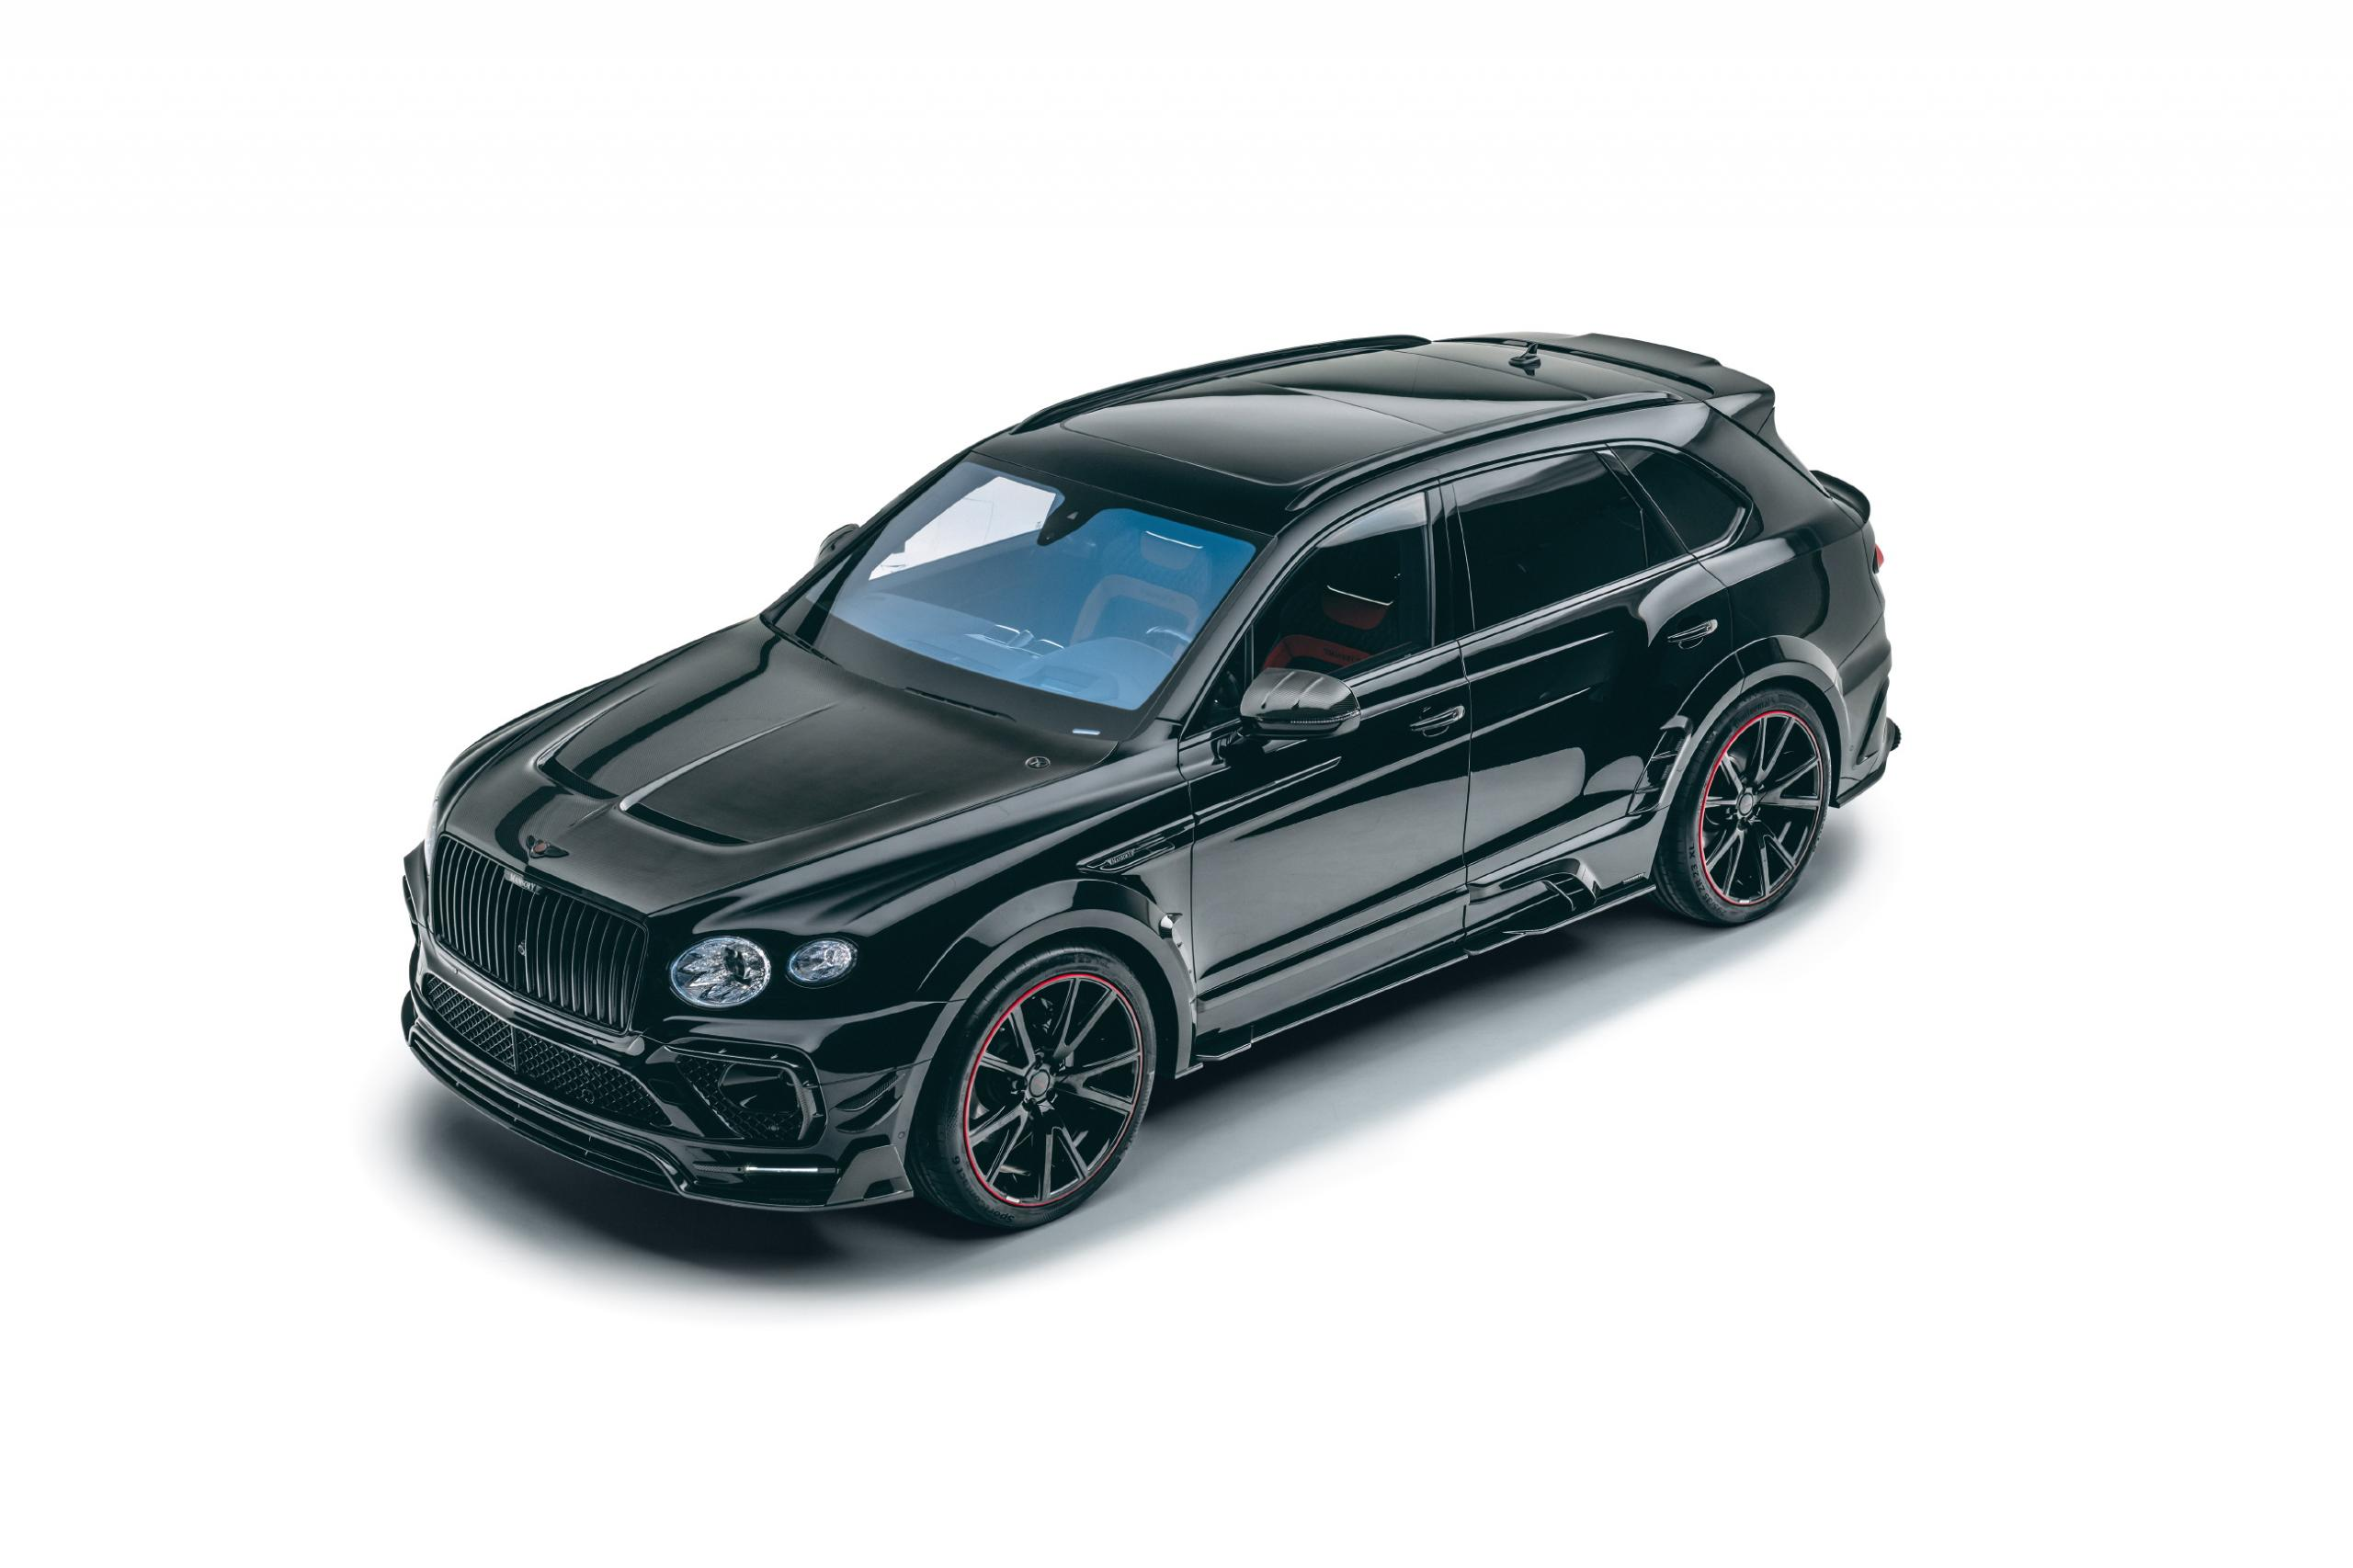 mansory new bentayga wide body kit carbon fiber y.5 23 wheel 2021 front angle